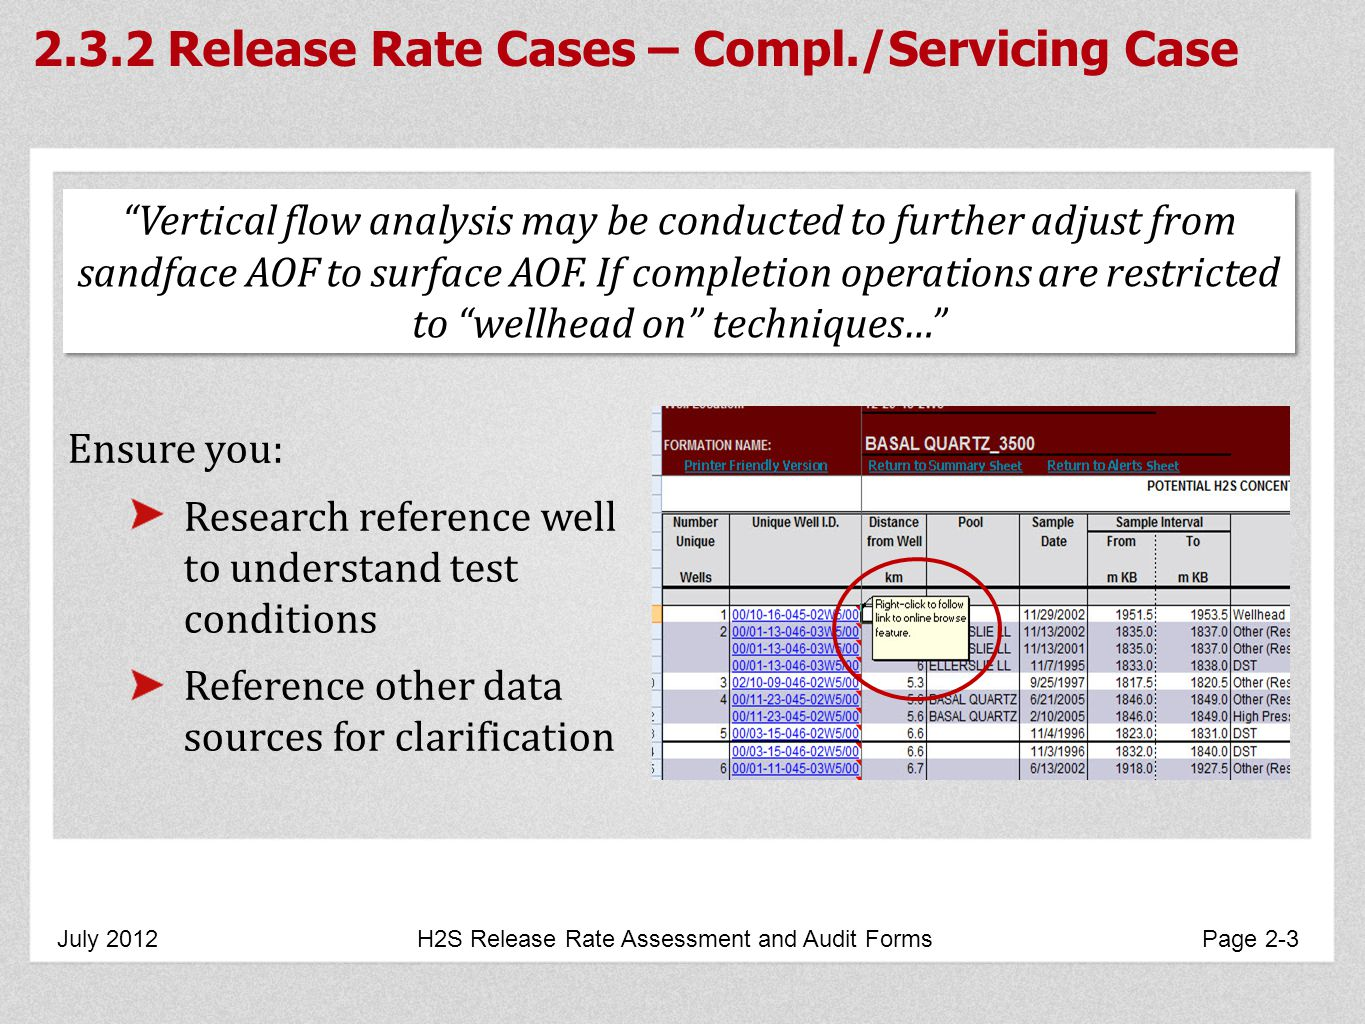 2.3.2 Release Rate Cases – Compl./Servicing Case July 2012 H2S Release Rate Assessment and Audit Forms Page 2-3 Ensure you: Research reference well to understand test conditions Reference other data sources for clarification Vertical flow analysis may be conducted to further adjust from sandface AOF to surface AOF.